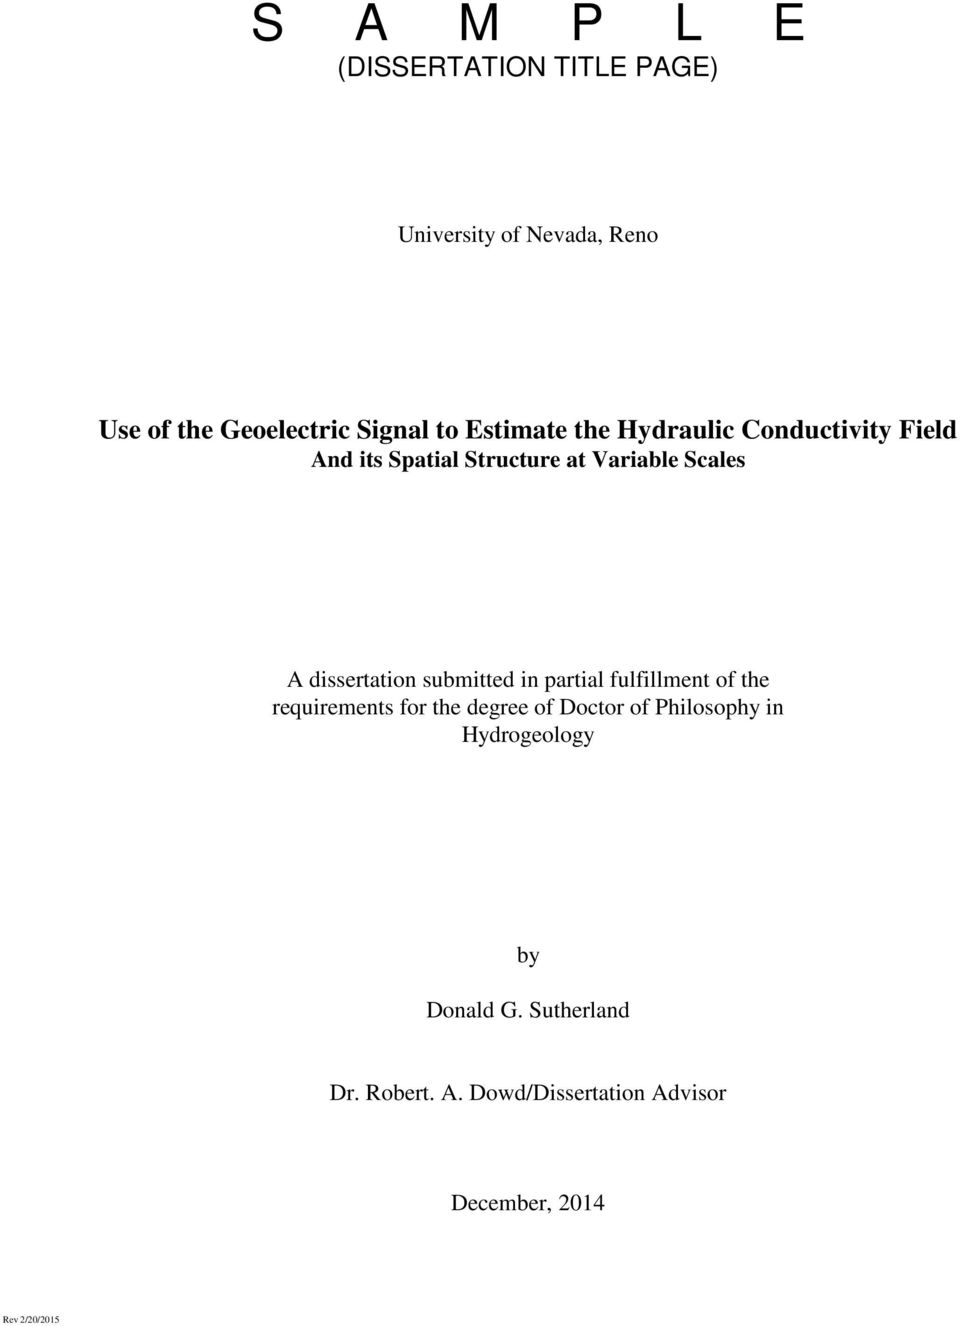 dissertation submitted in partial fulfillment of the requirements for the degree of Doctor of